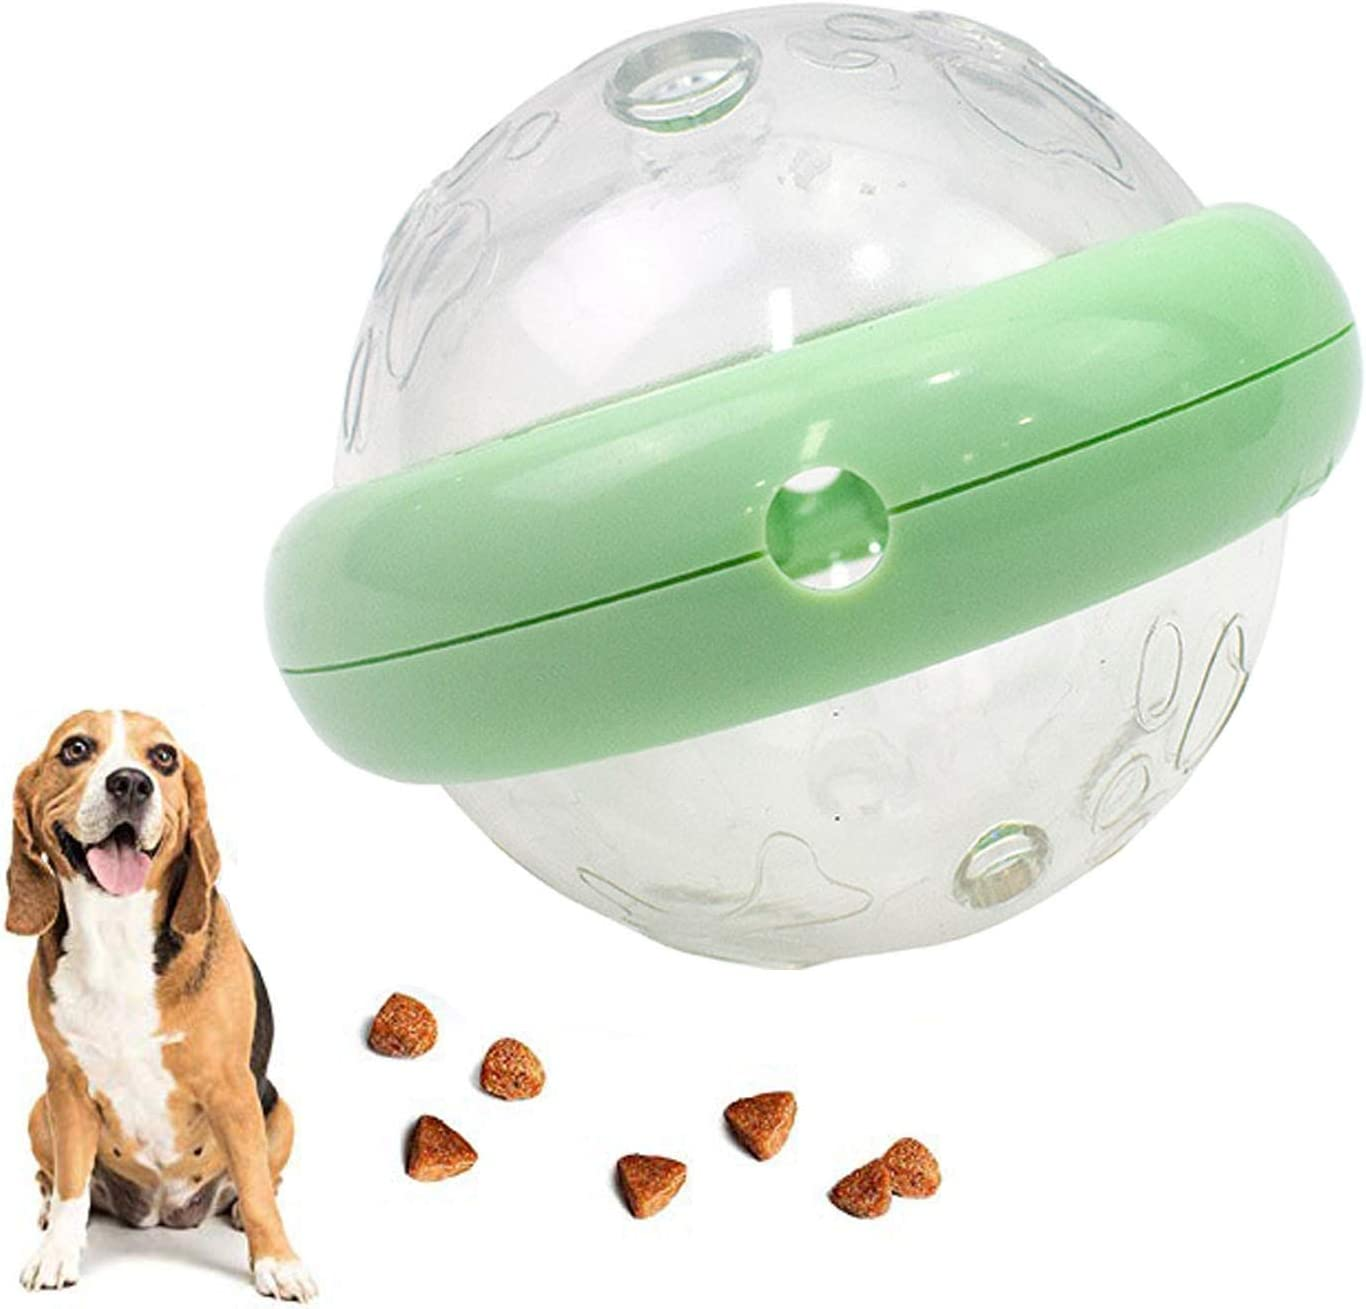 GACYSMD Pet Food Feeder IQ Treat Ball Interactive Dog Cats Toys,Pet Chewing Toy, Leaking Food Ball(Slow Feeder, Dog Puzzle Toys, Alternative to Snuffle Mat), Perfect Dog Gifts, Dog Toys